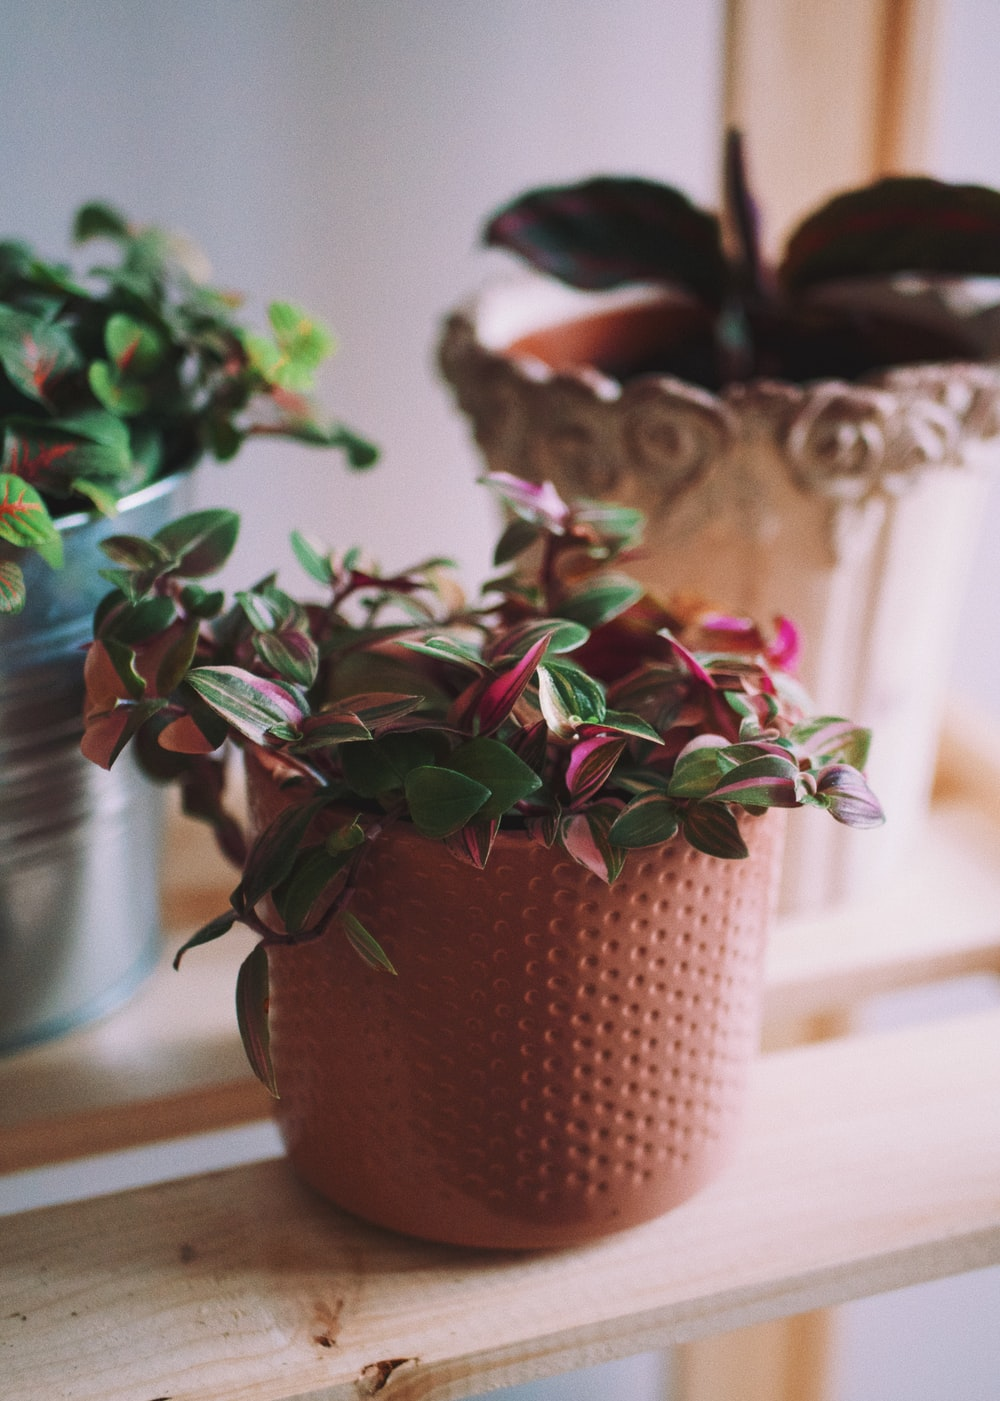 green and red plant on brown clay pot